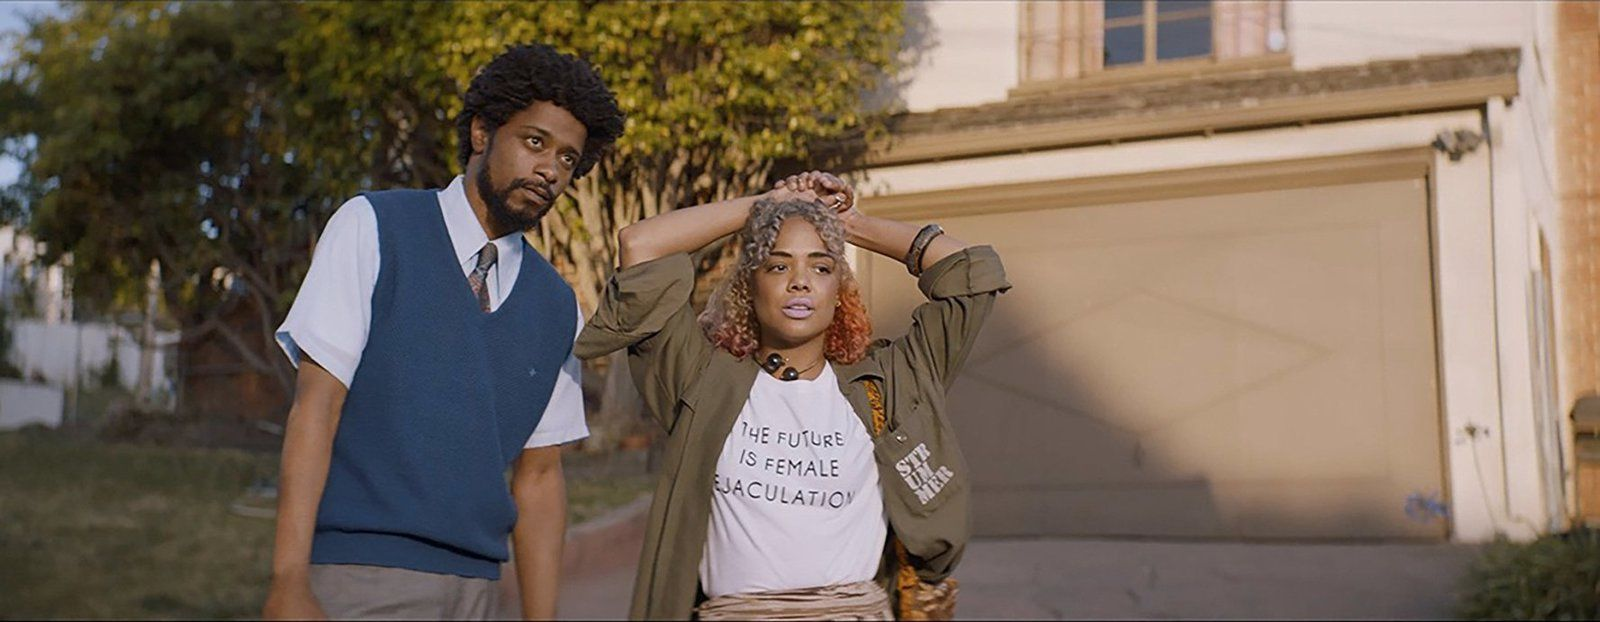 Sorry to bother you (BANDE-ANNONCE) avec Lakeith Stanfield, Tessa Thompson, Danny Glover - Le 30 janvier 2019 au cinéma